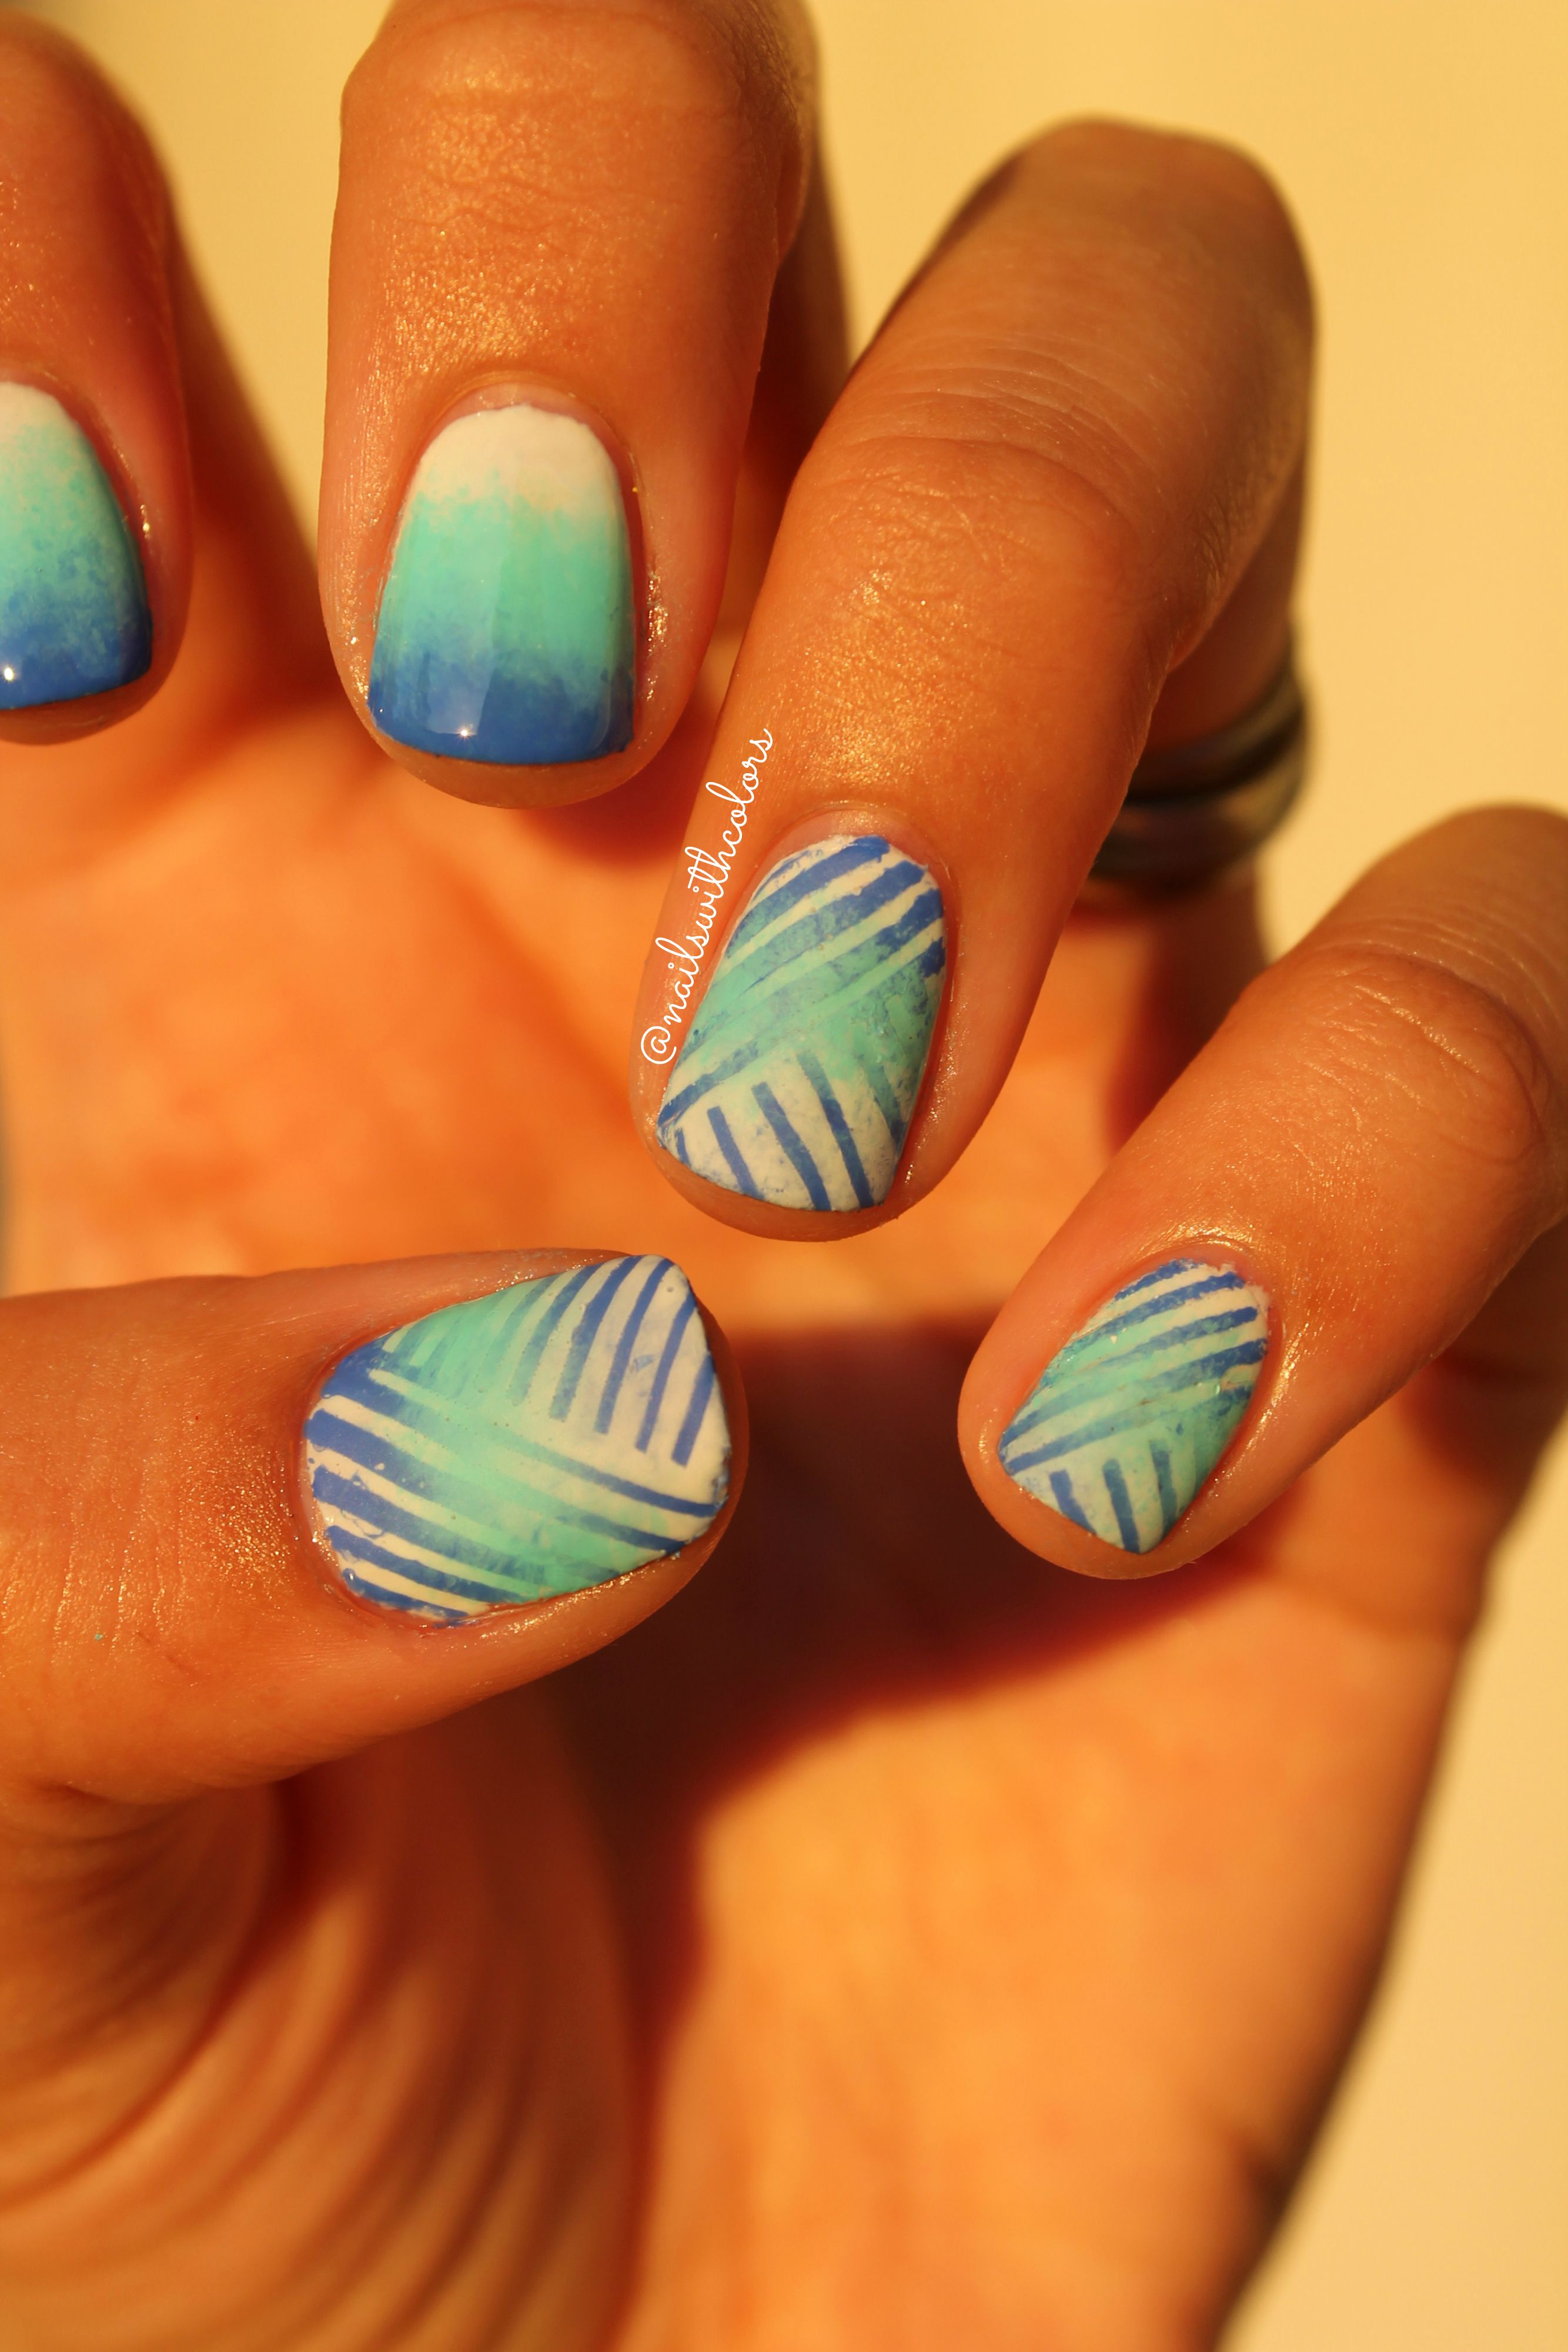 reciprocalgradient inspired by the goddess of nail art gradients ...